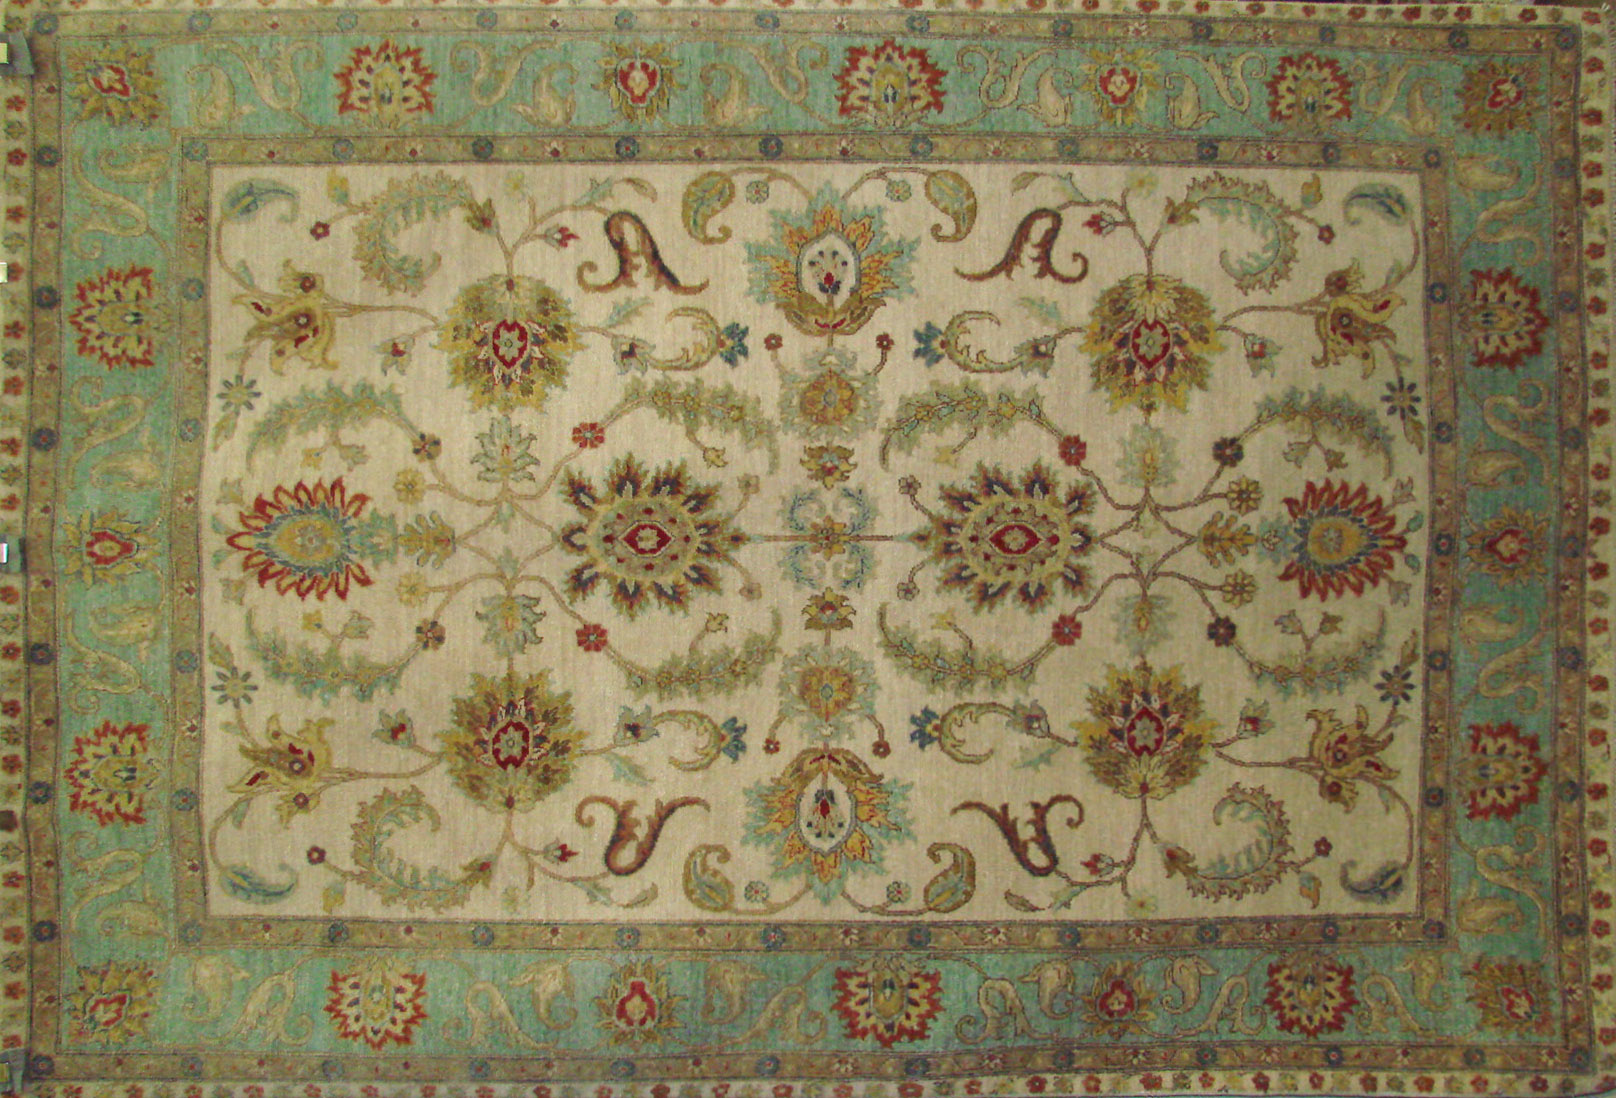 6x9 Traditional Hand Knotted Wool Area Rug - MR021974